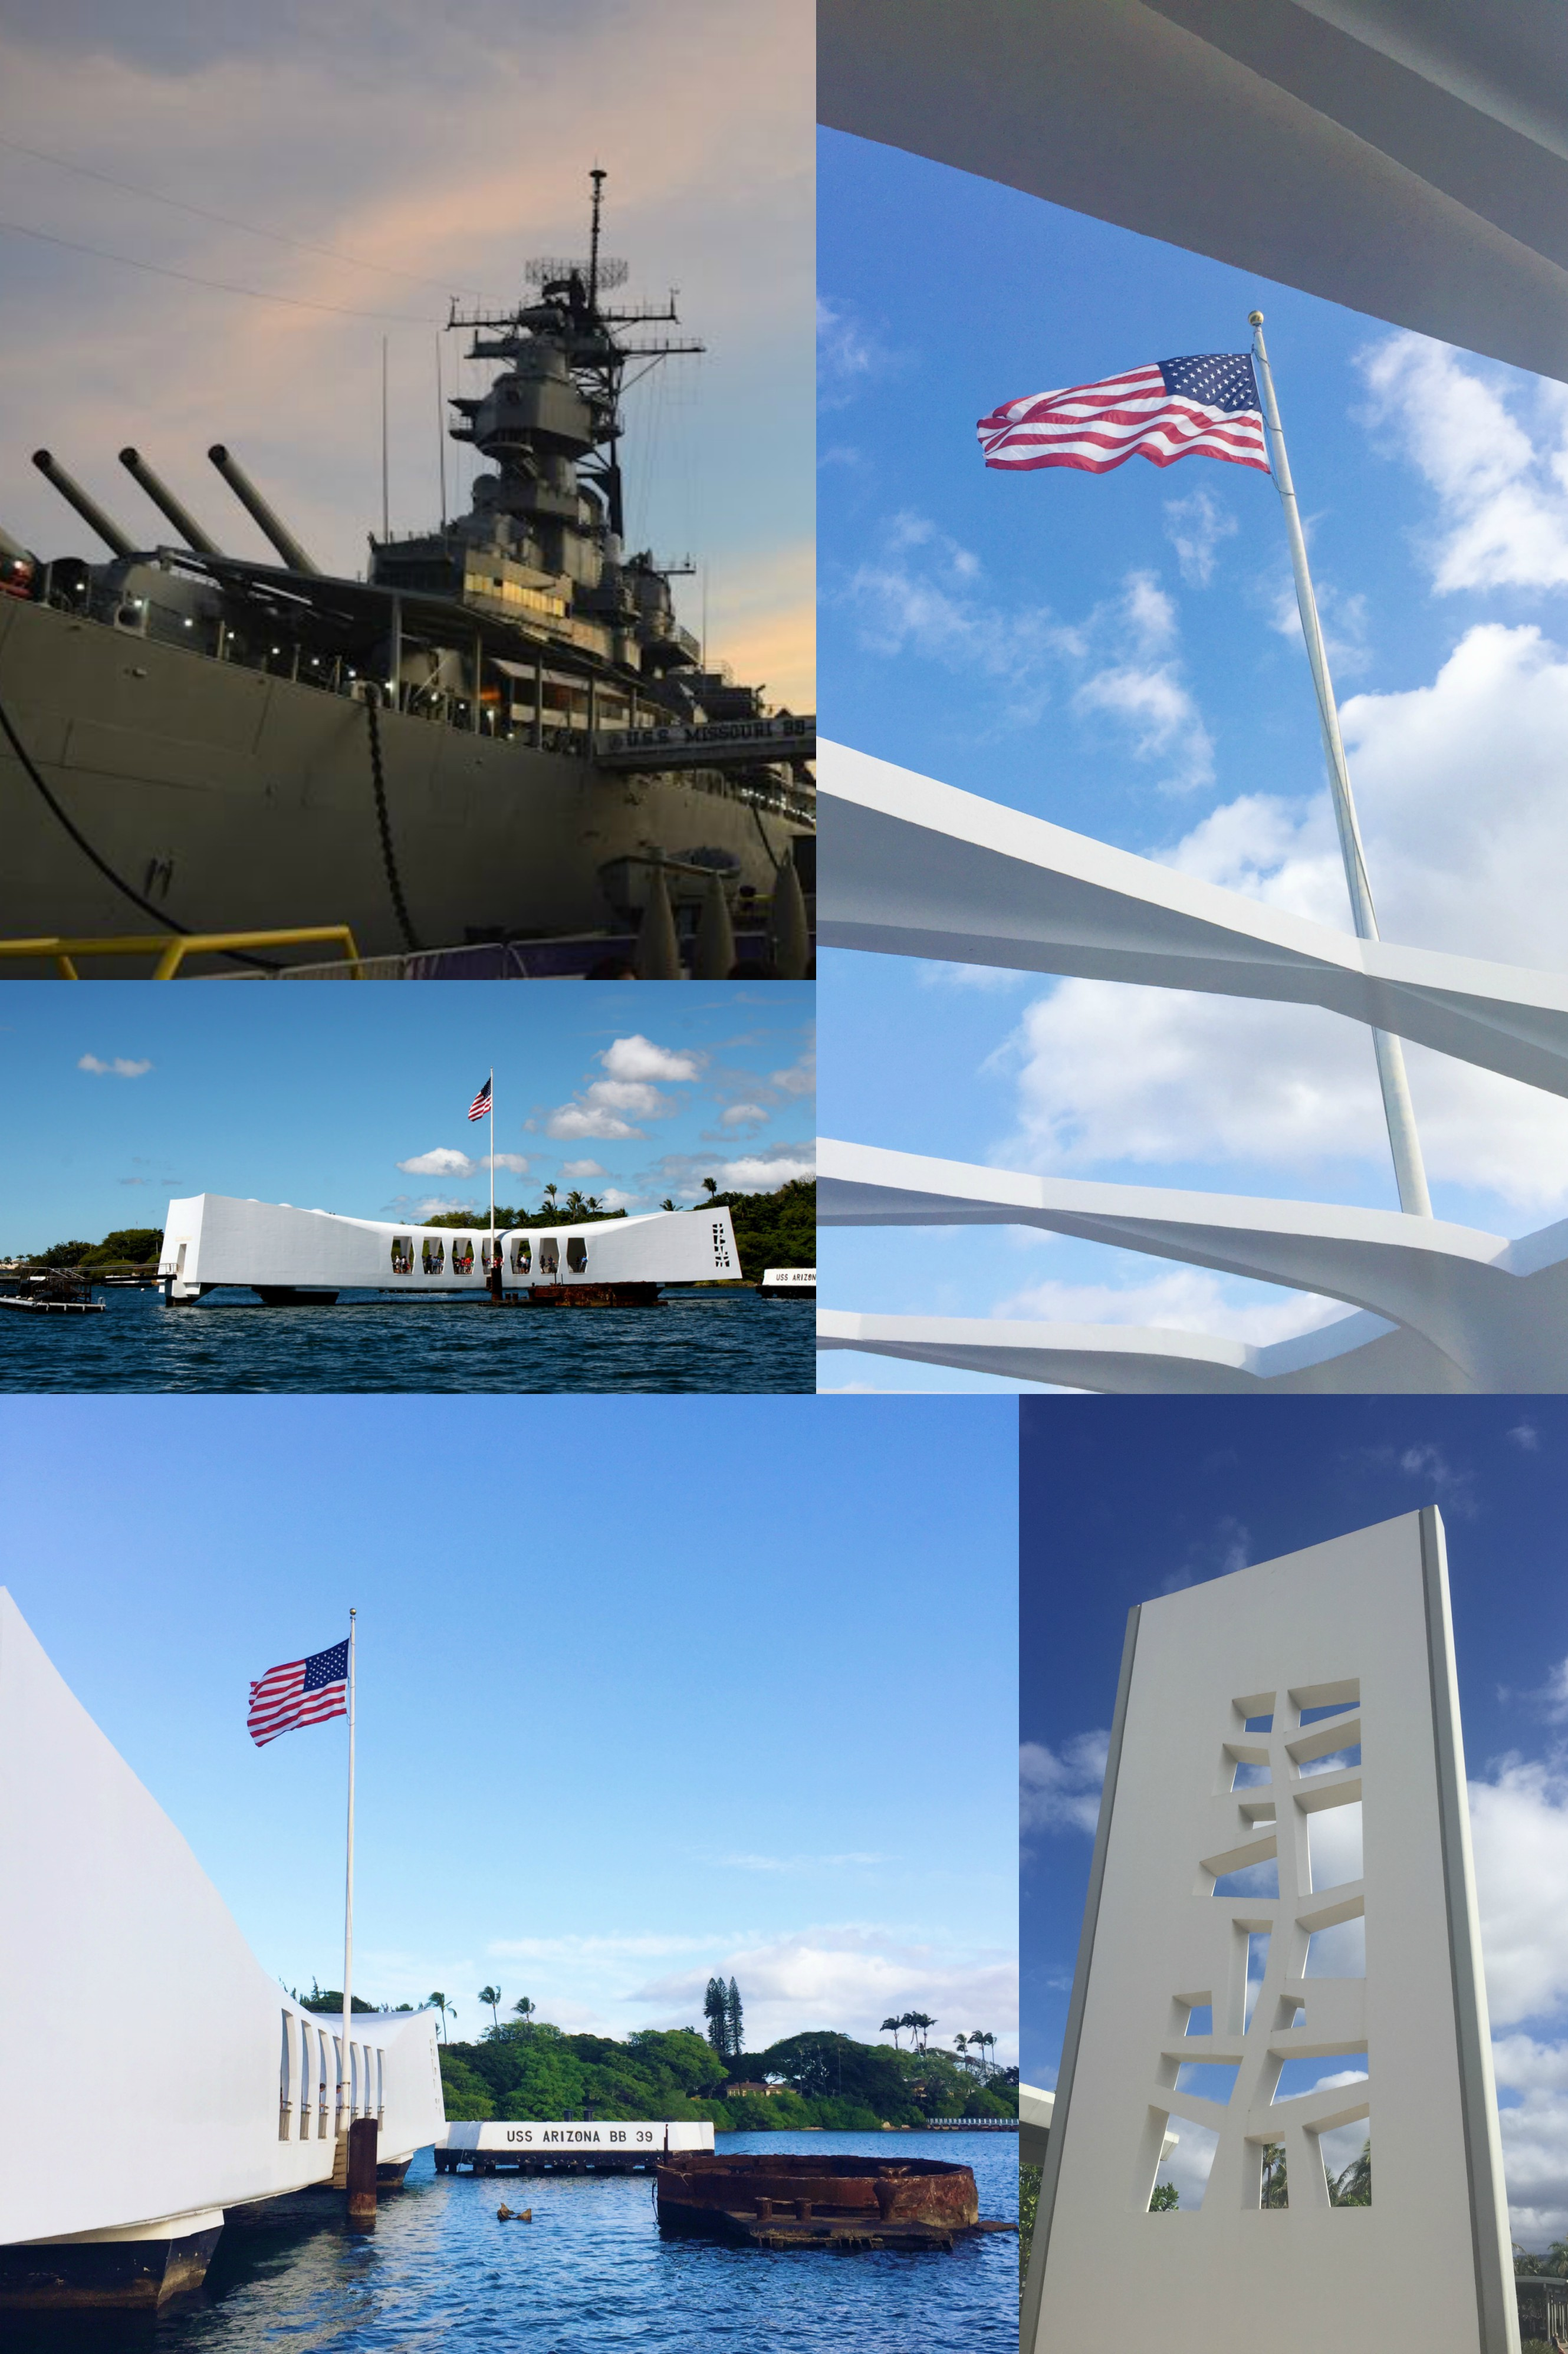 Pearl Harbor - The Instagram Guide To Honolulu - Instagram Worthy Spots Honolulu - Oahu Guide For Instagram - Best Places To Take Photos Honolulu - Oahu Vacation Guide - Where To Visit Hawaii - Hawaii Itinerary - Communikait by Kait Hanson